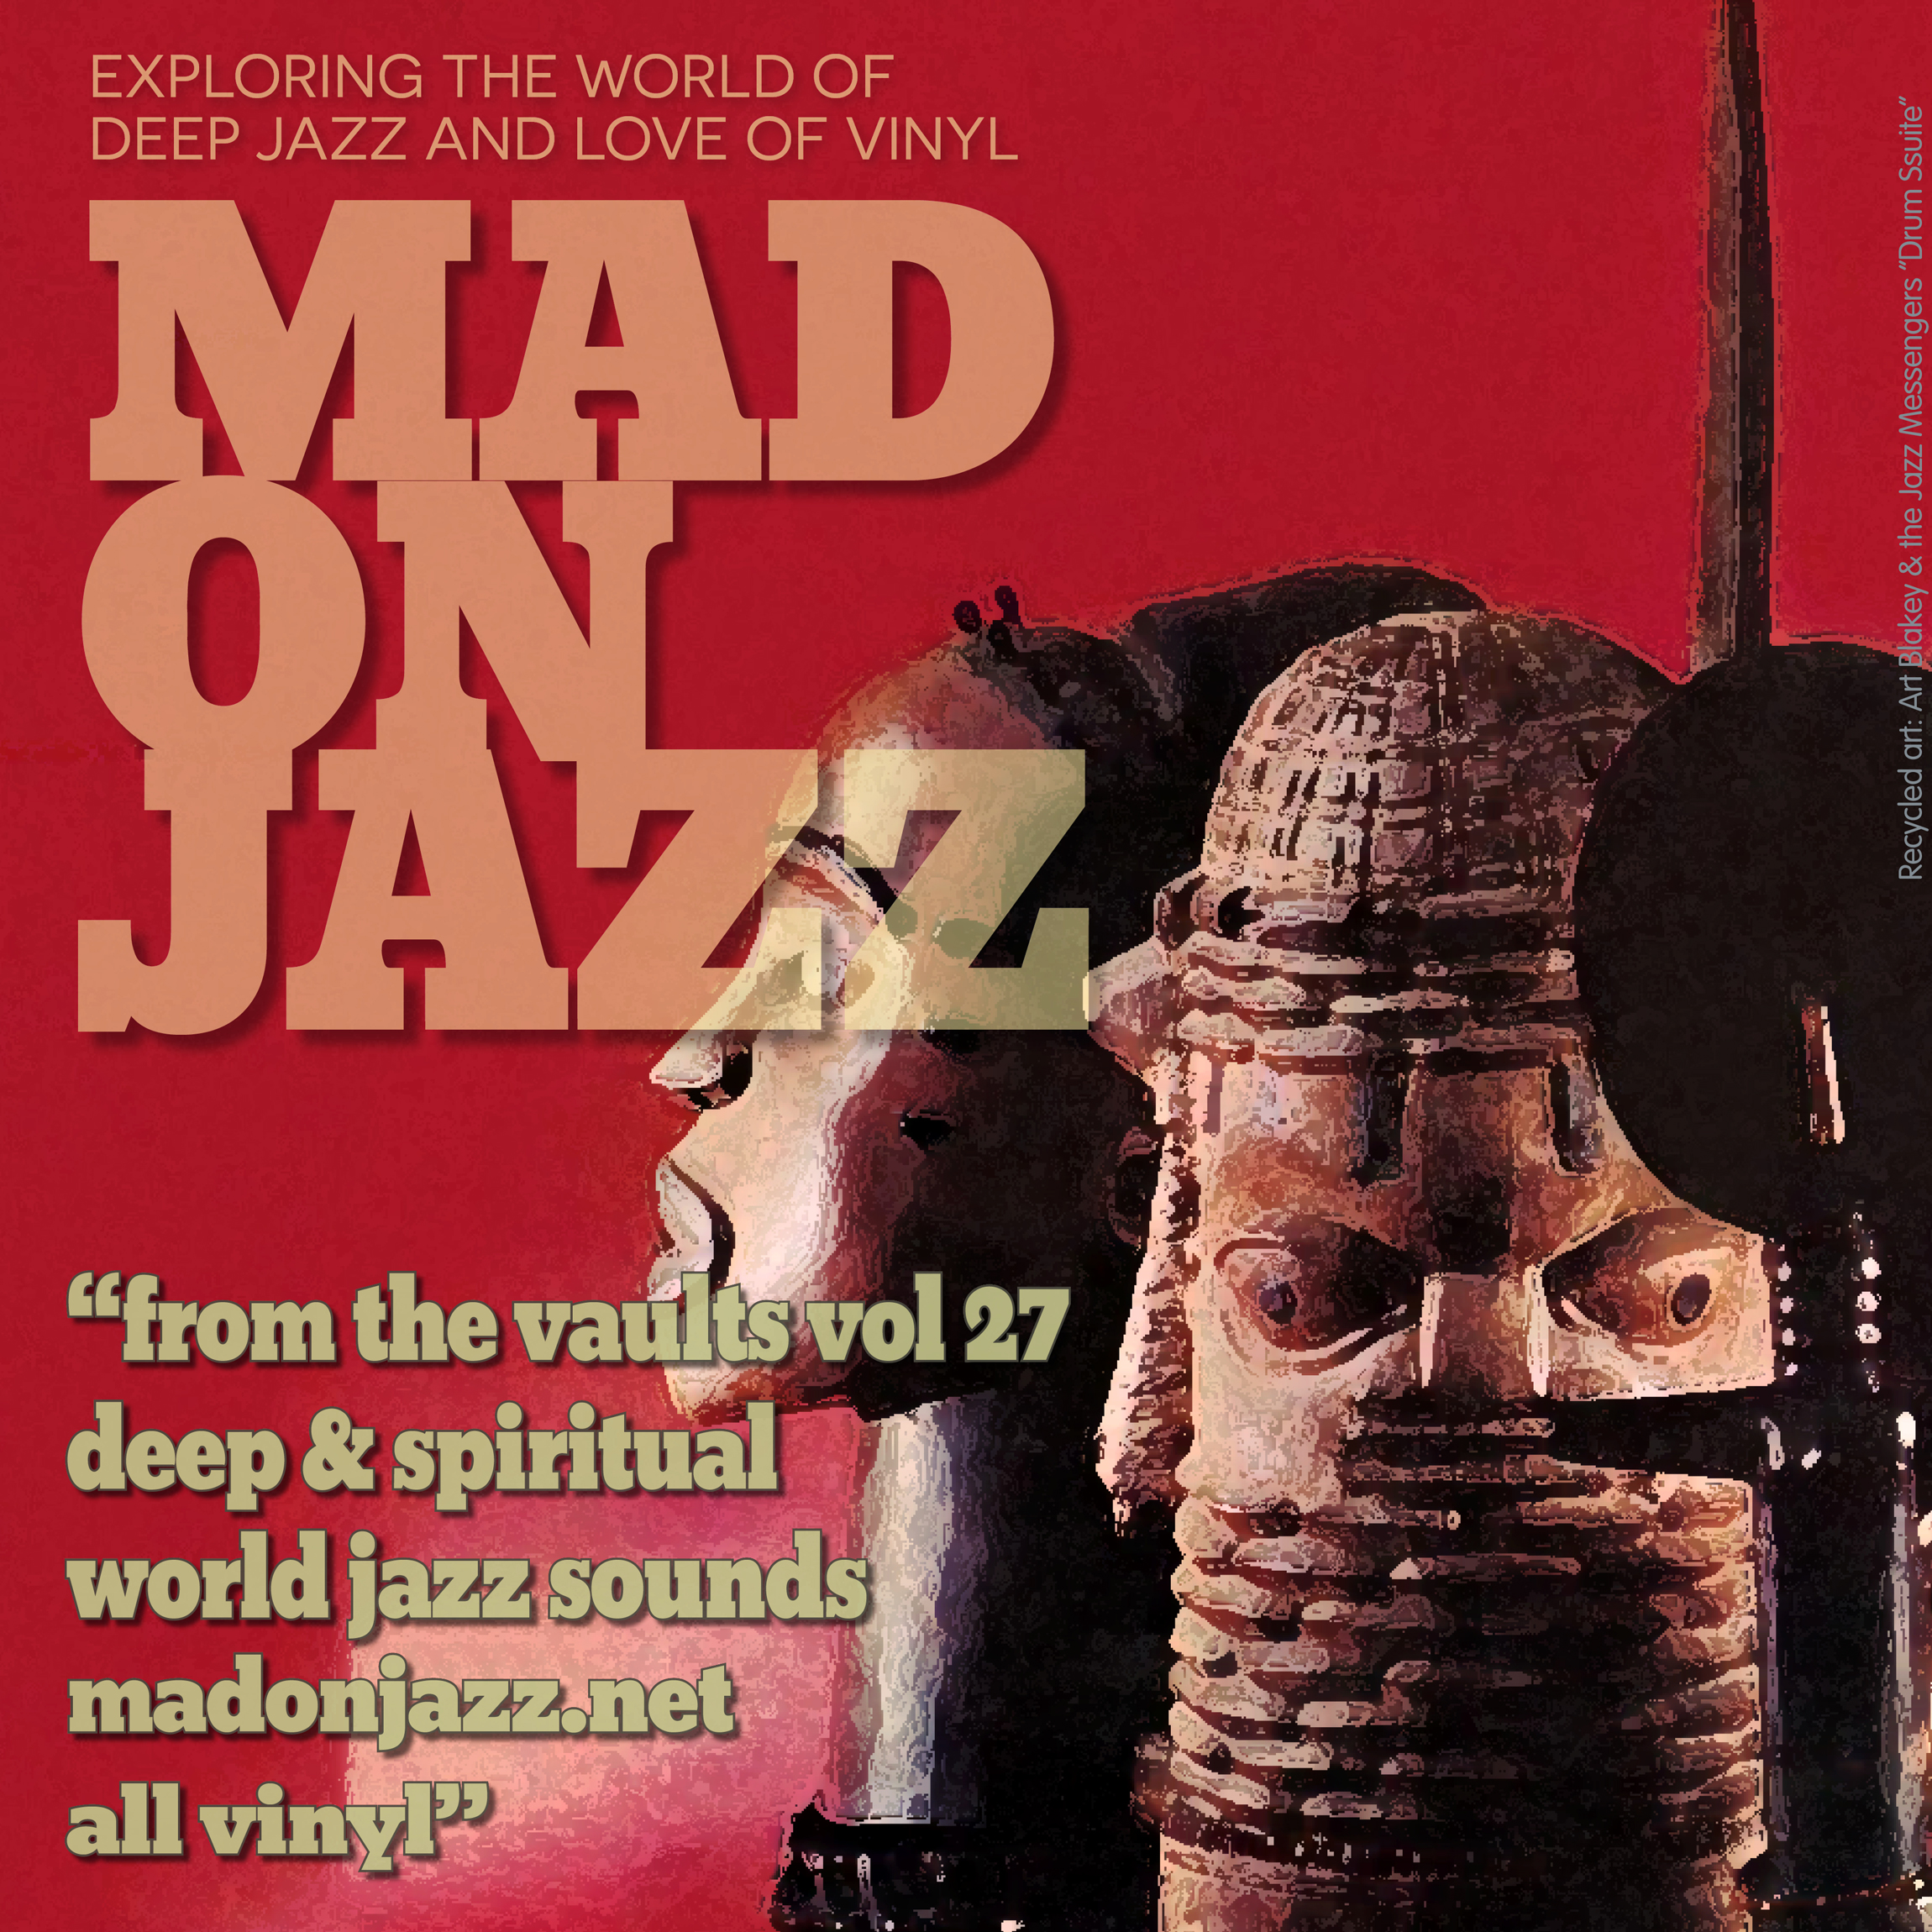 MADONJAZZ From the Vaults Vol. 27: Deep & Spiritual World Jazz Sounds